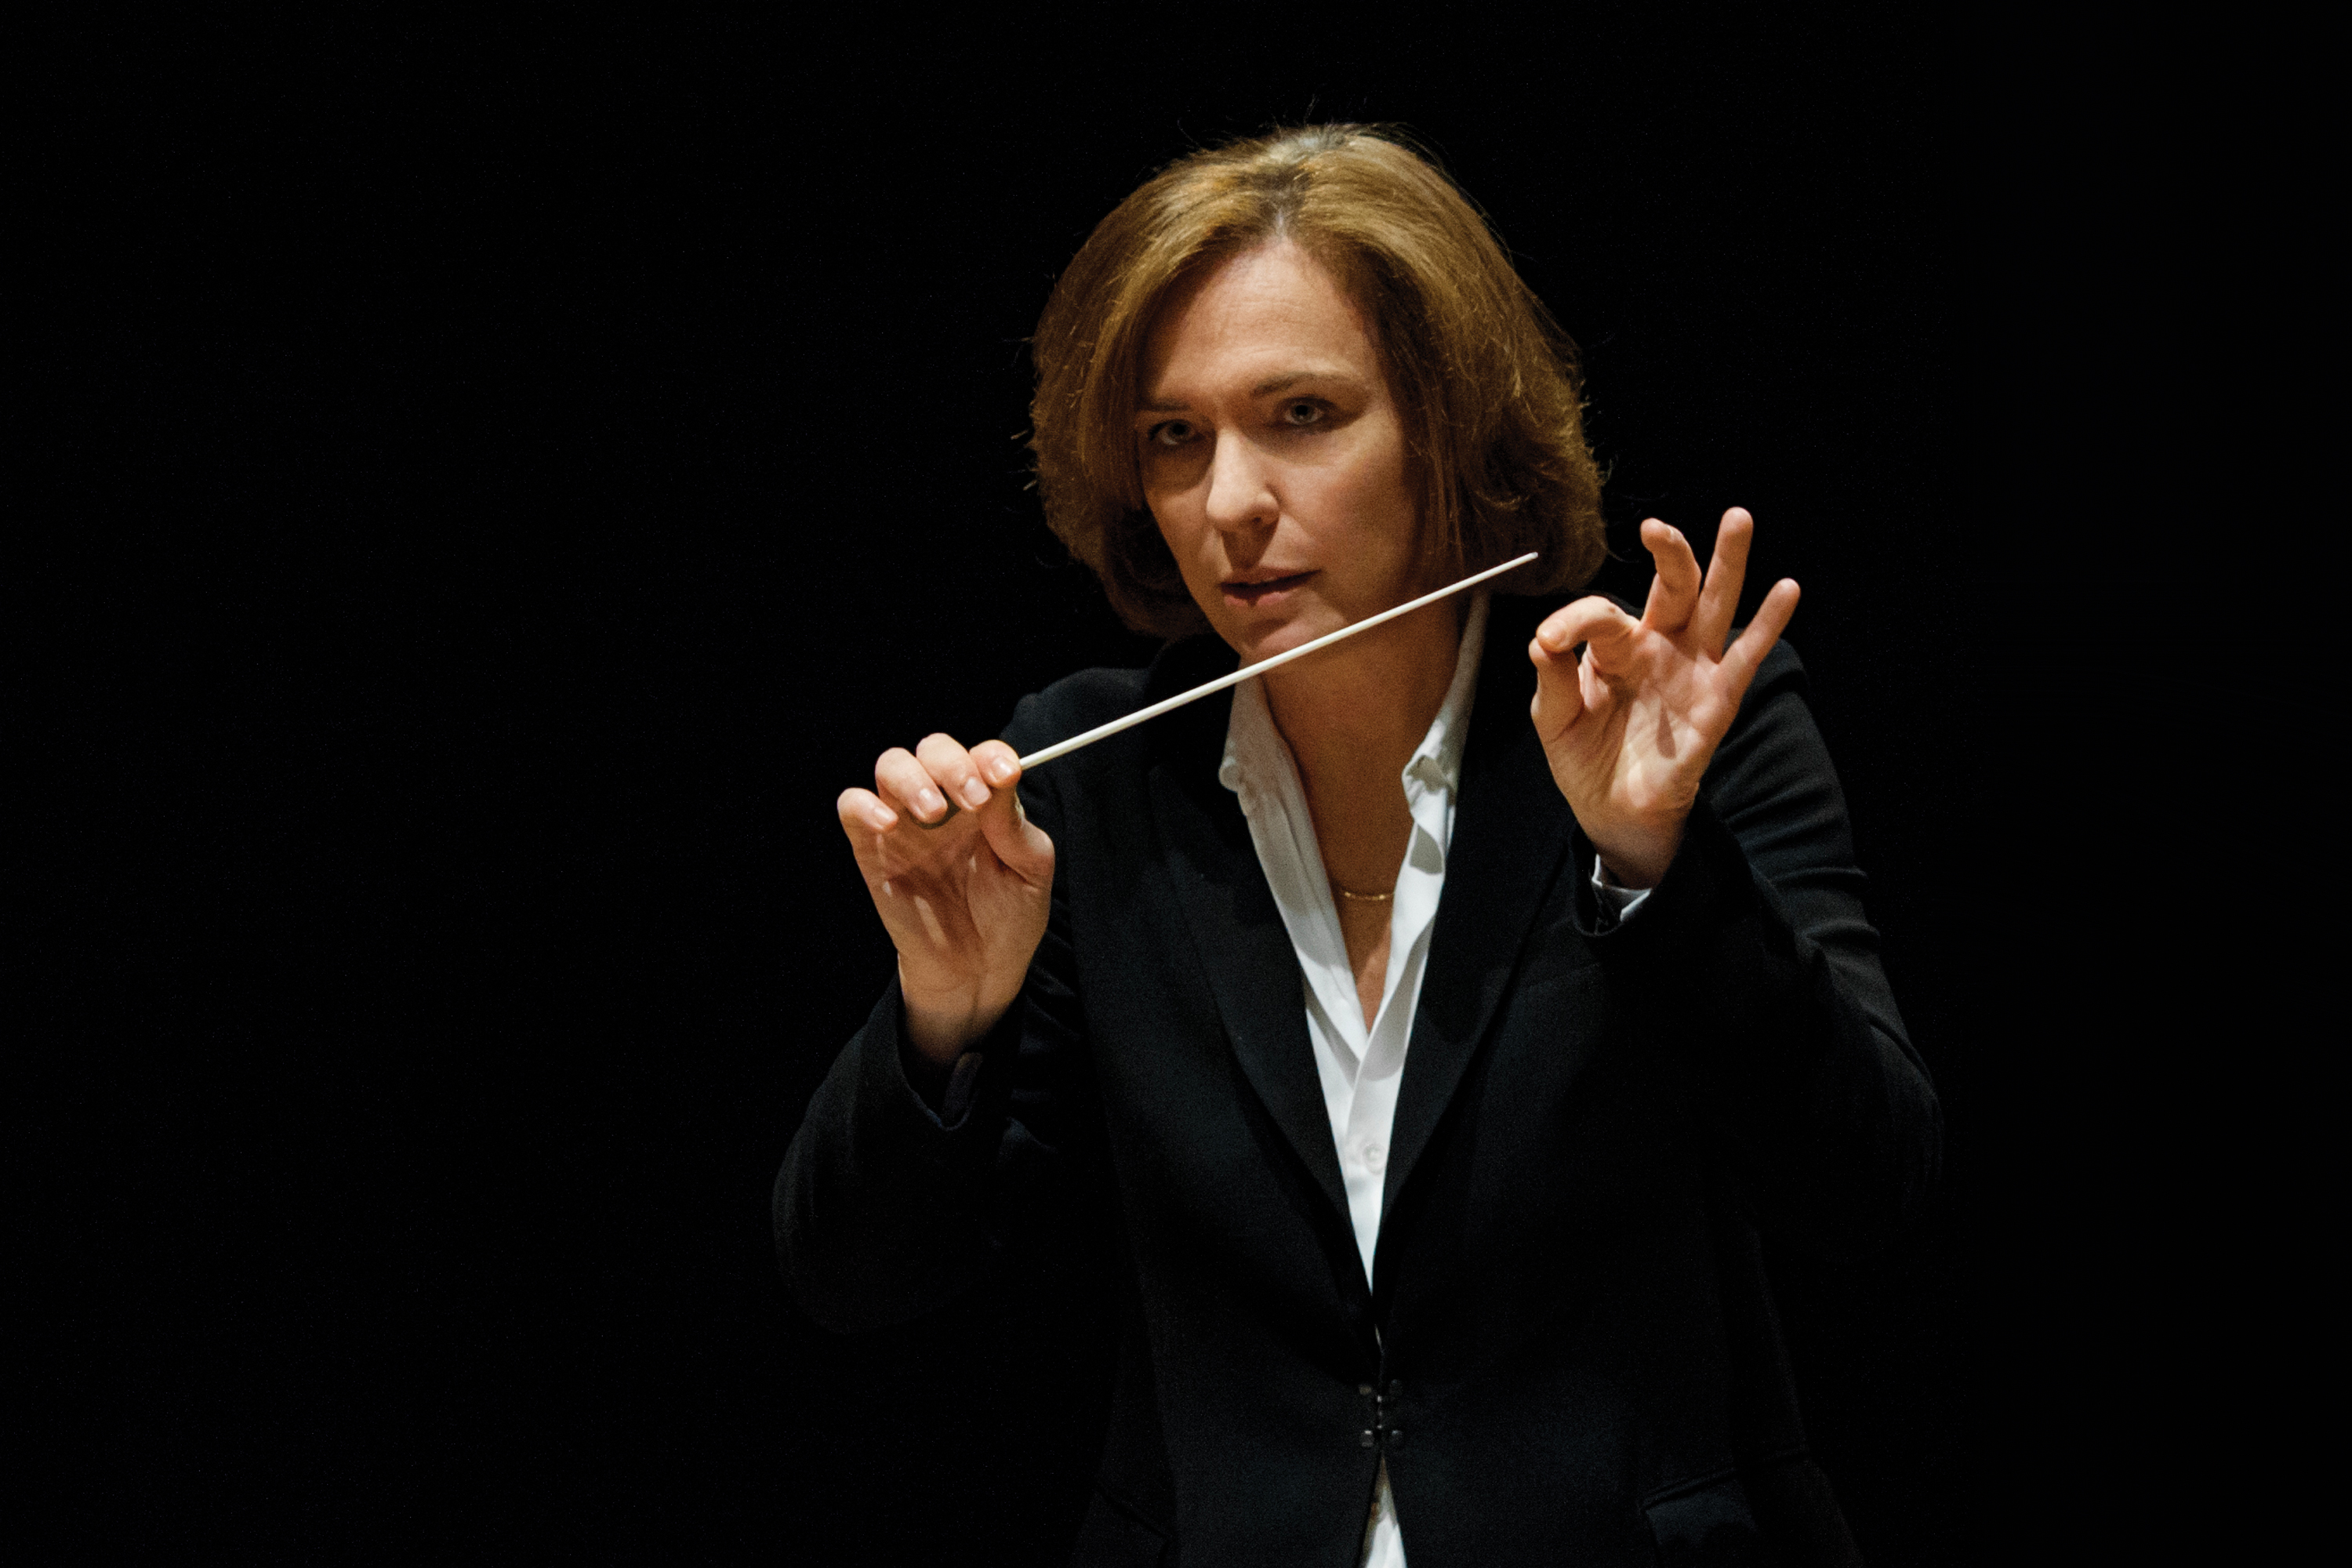 Laurence Equilbey conducts Brahms's German Requiem in Lisbon and Paris 2